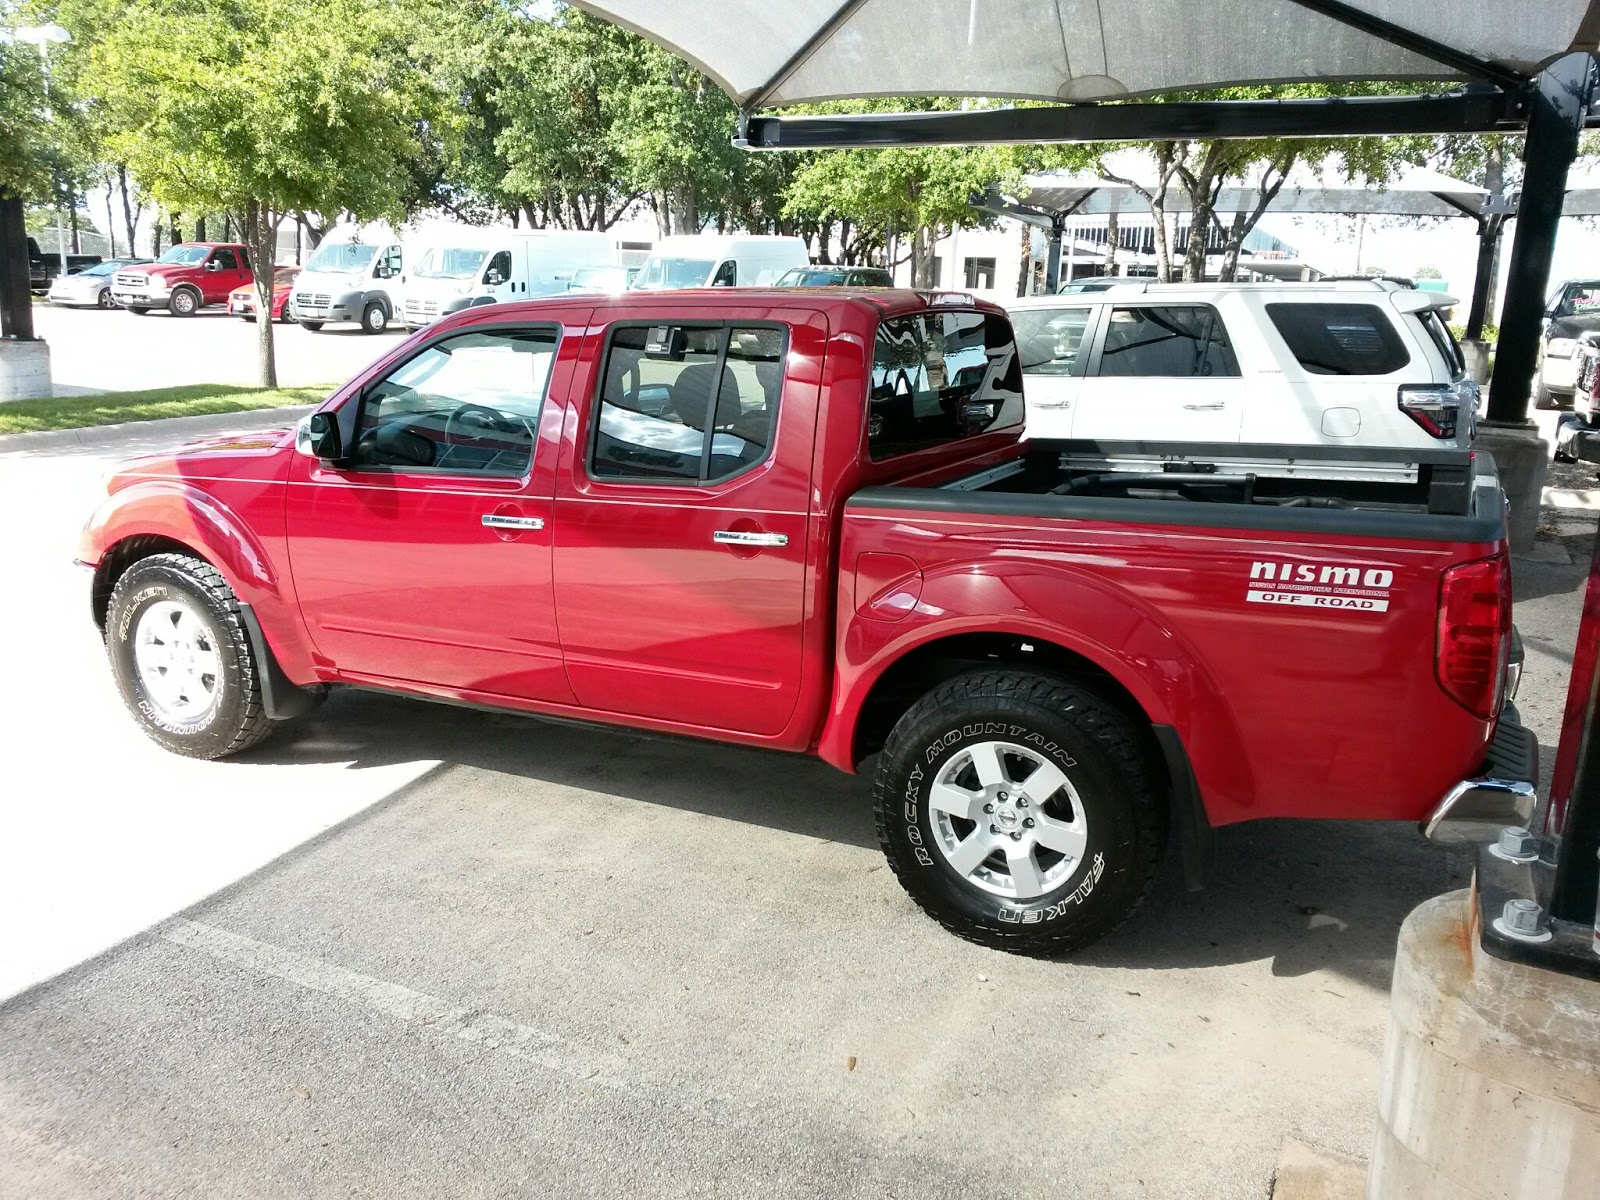 2007 Nissan Frontier 4X4 hd image